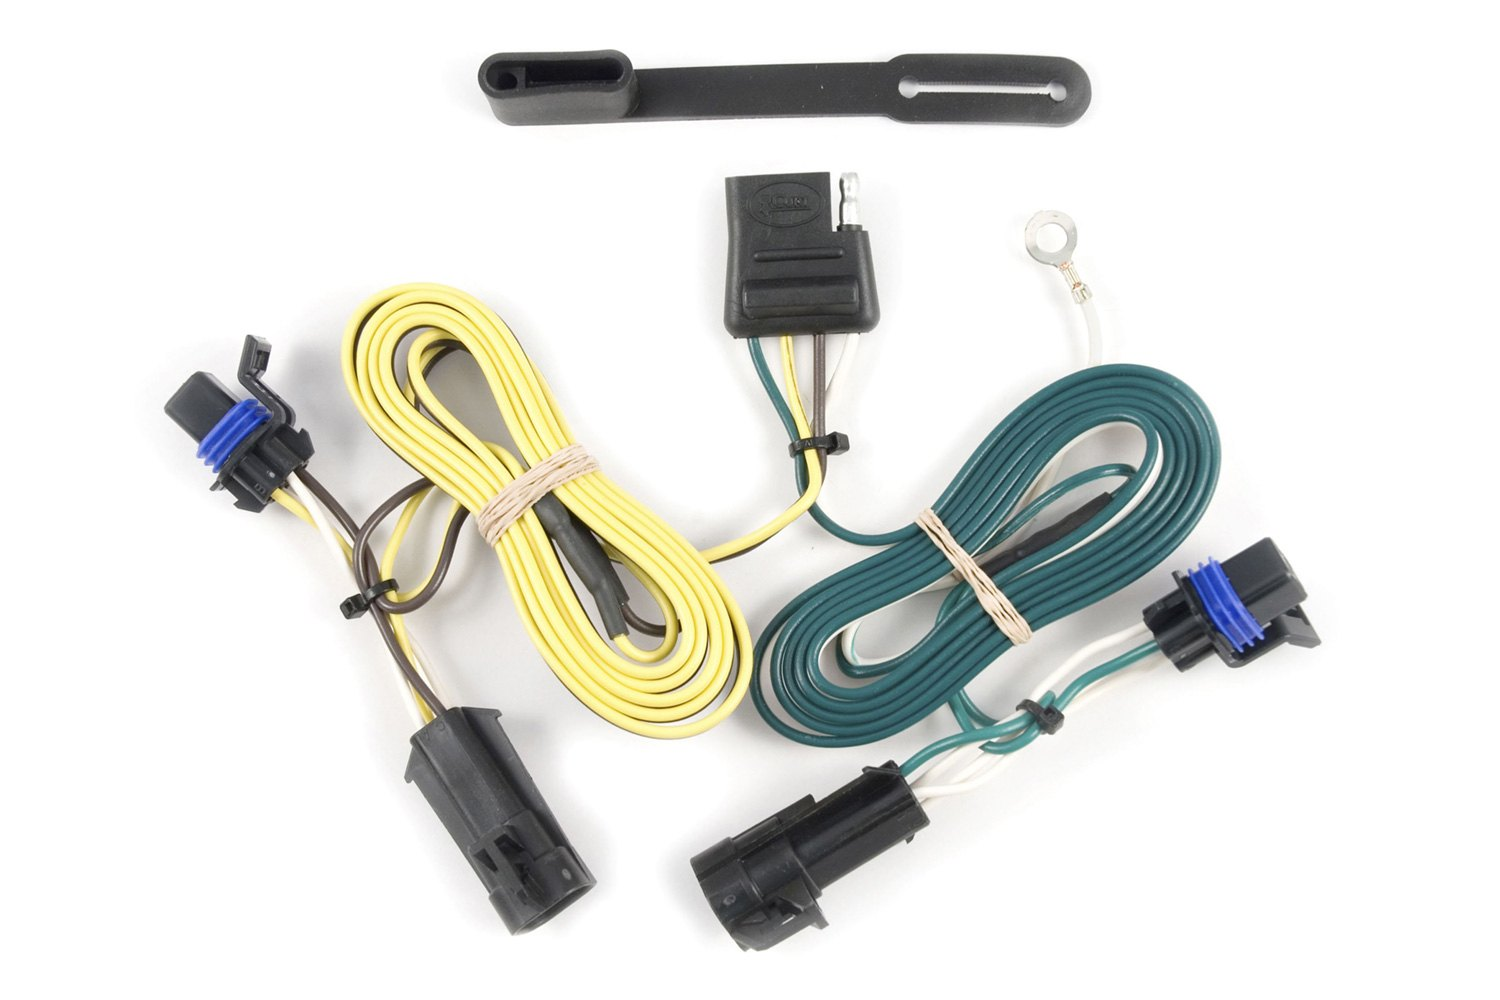 curt chevy malibu 2005 towing wiring harness. Black Bedroom Furniture Sets. Home Design Ideas